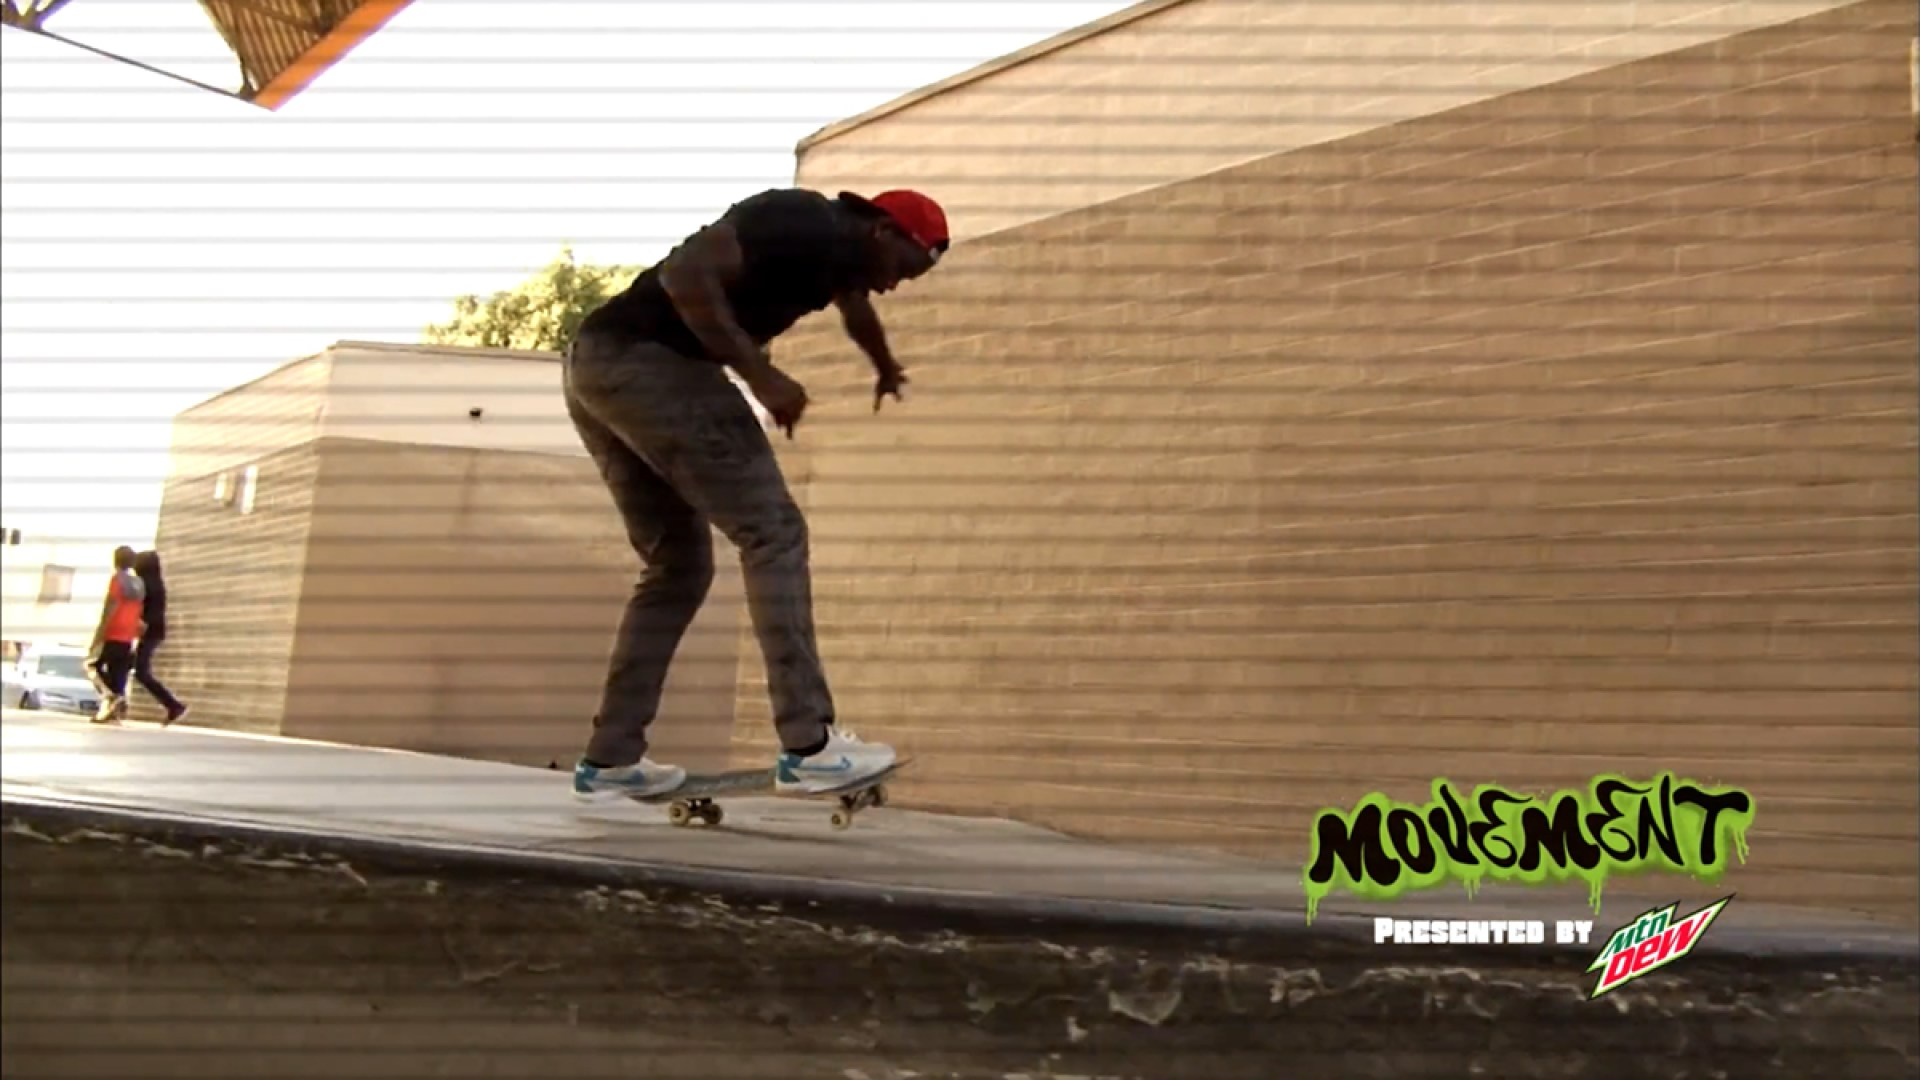 Theotis Beasley and MTN DEW present Movement